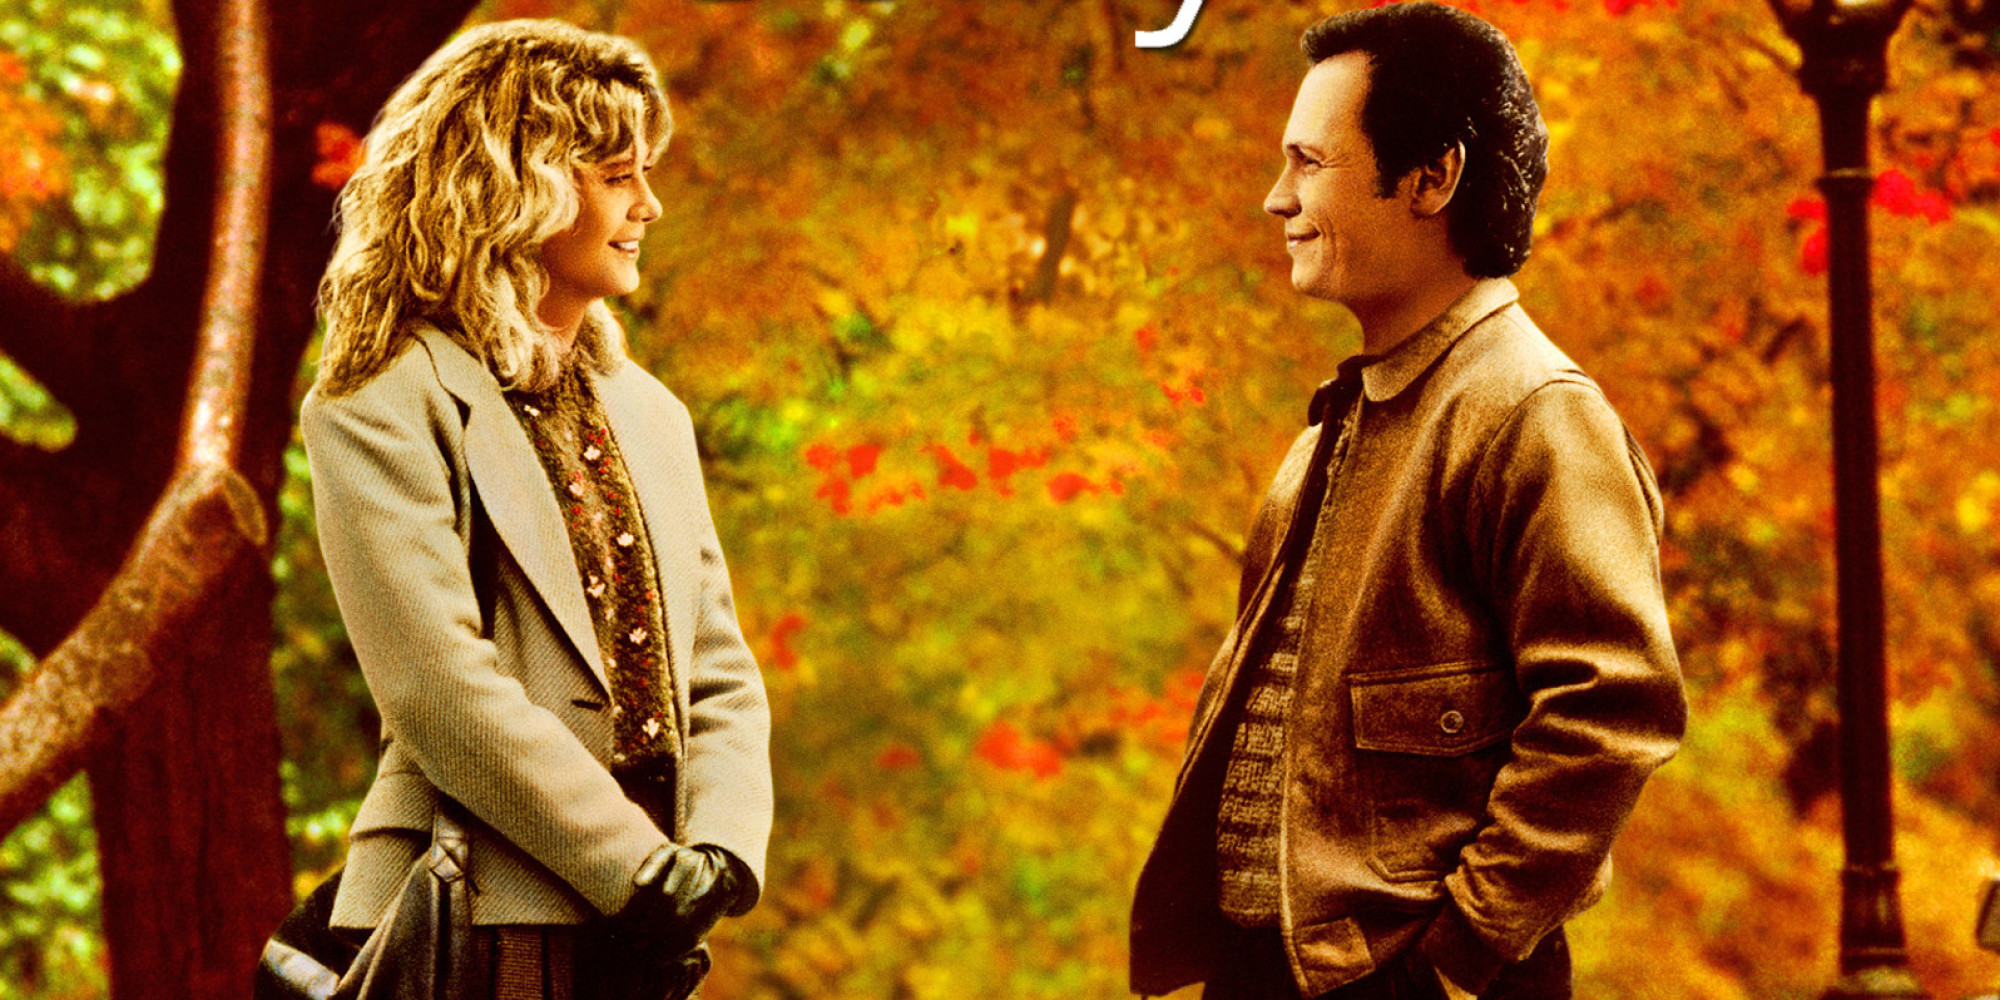 Lot Of Film Critics Compared 'When Harry Met Sally' To Woody Allen ...